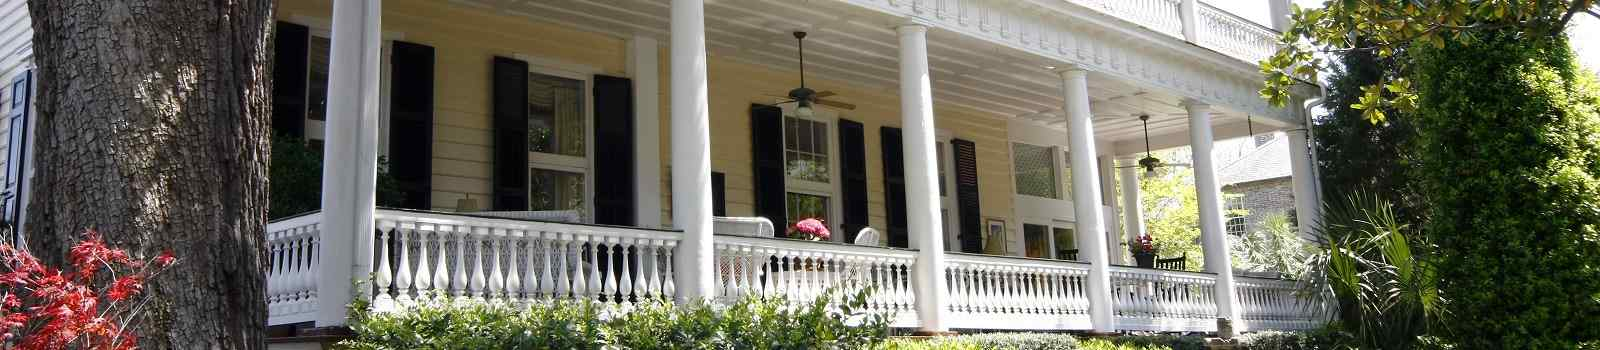 BEST-OF-SOUTH-CAROLINA 1 South Carolina 1800s Southern Home 52803640